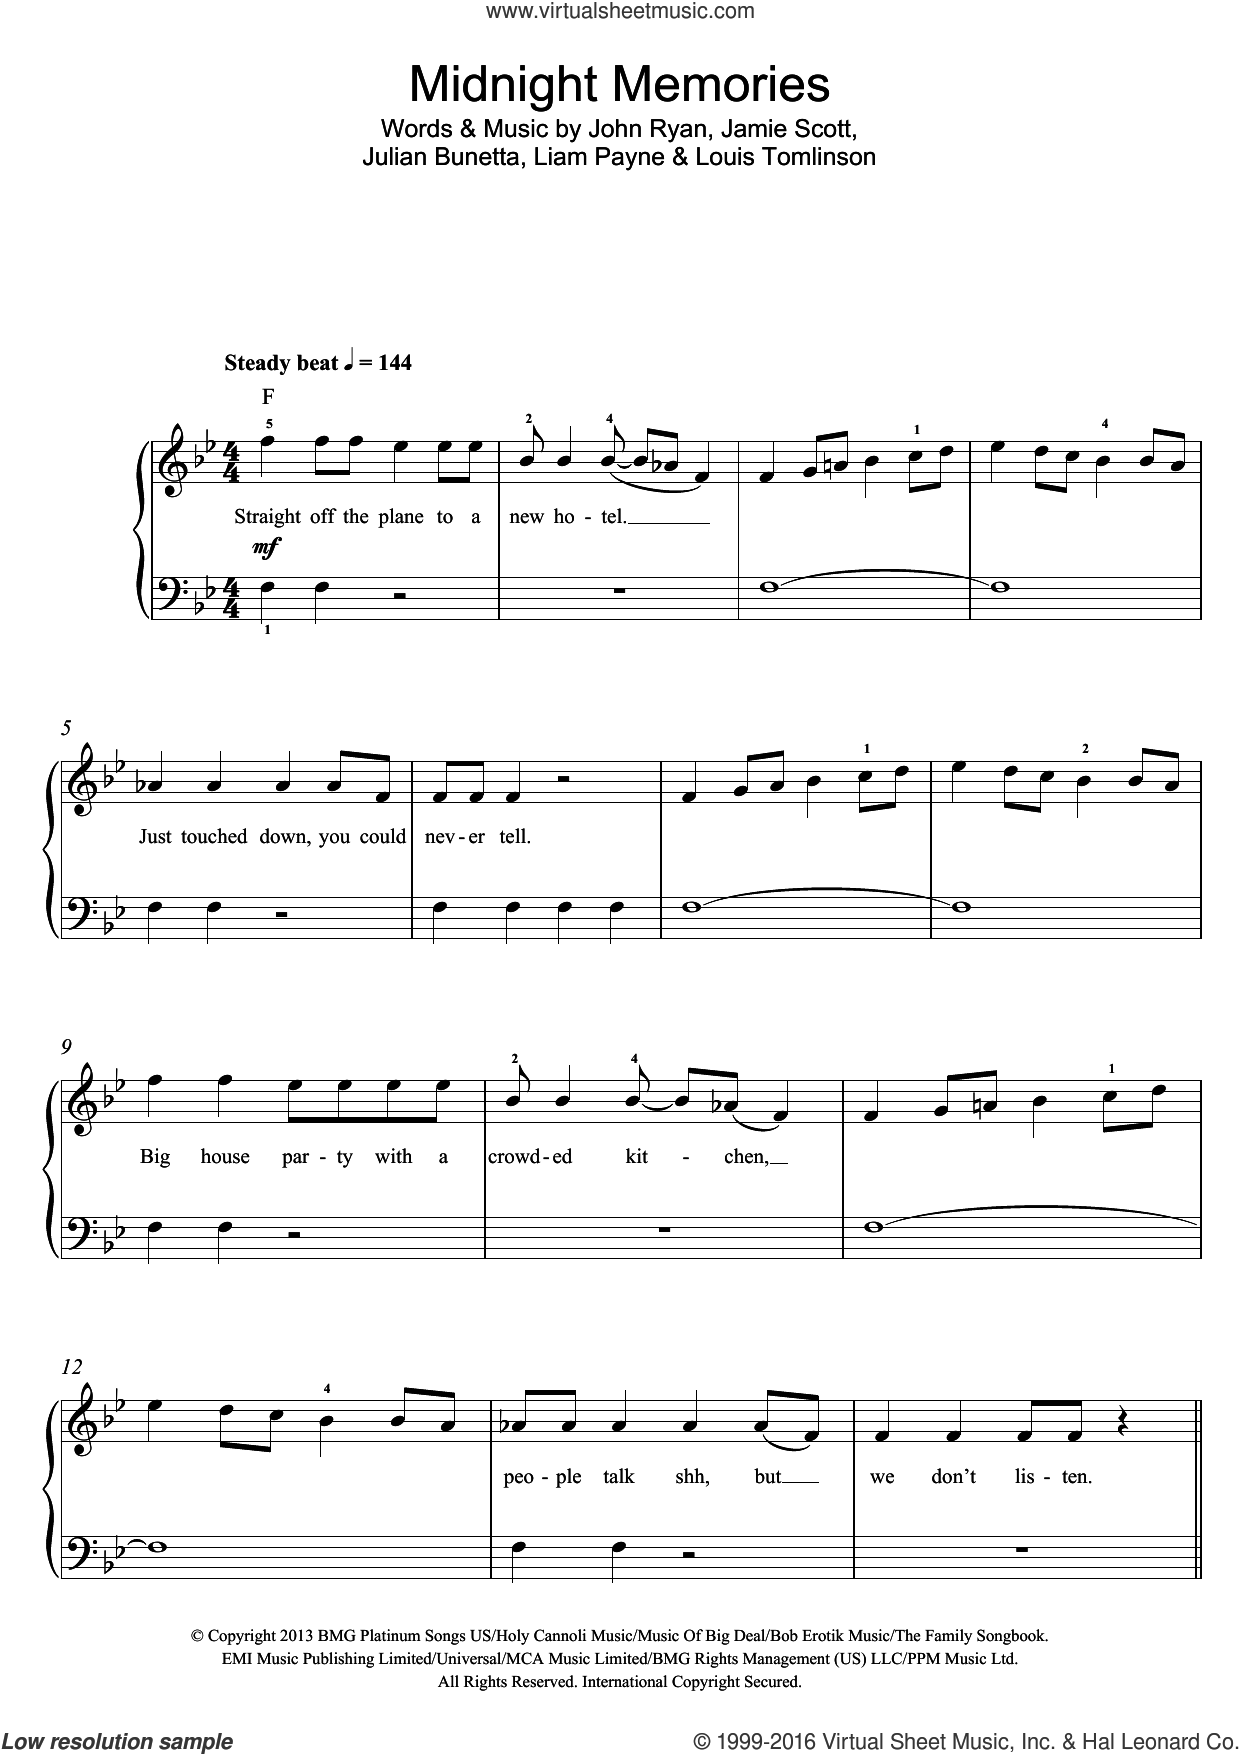 Midnight Memories sheet music for voice, piano or guitar by One Direction, Jamie Scott, John Ryan, Julian Bunetta, Liam Payne and Louis Tomlinson, intermediate skill level